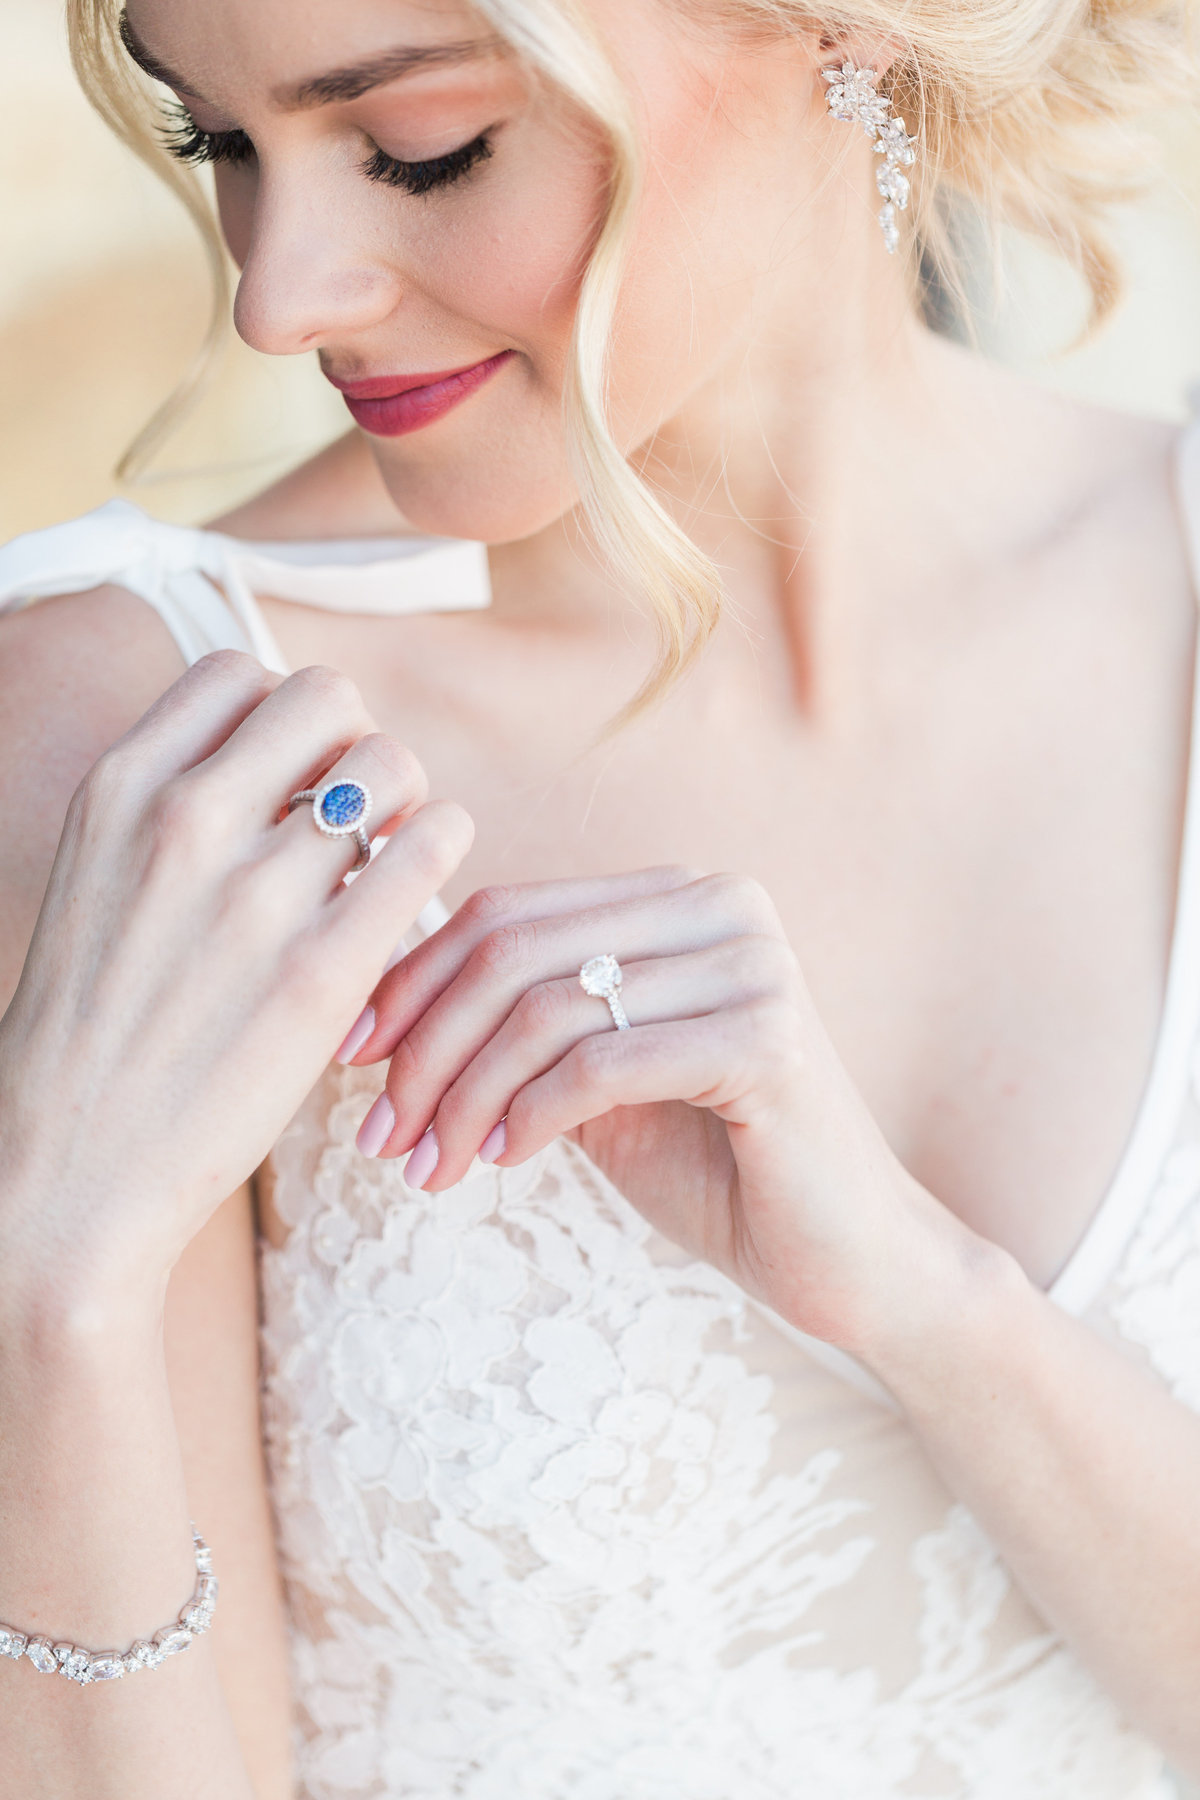 Malibu_Rocky_Oaks_Wedding_Inbal_Dror_Valorie_Darling_Photography - 34 of 160